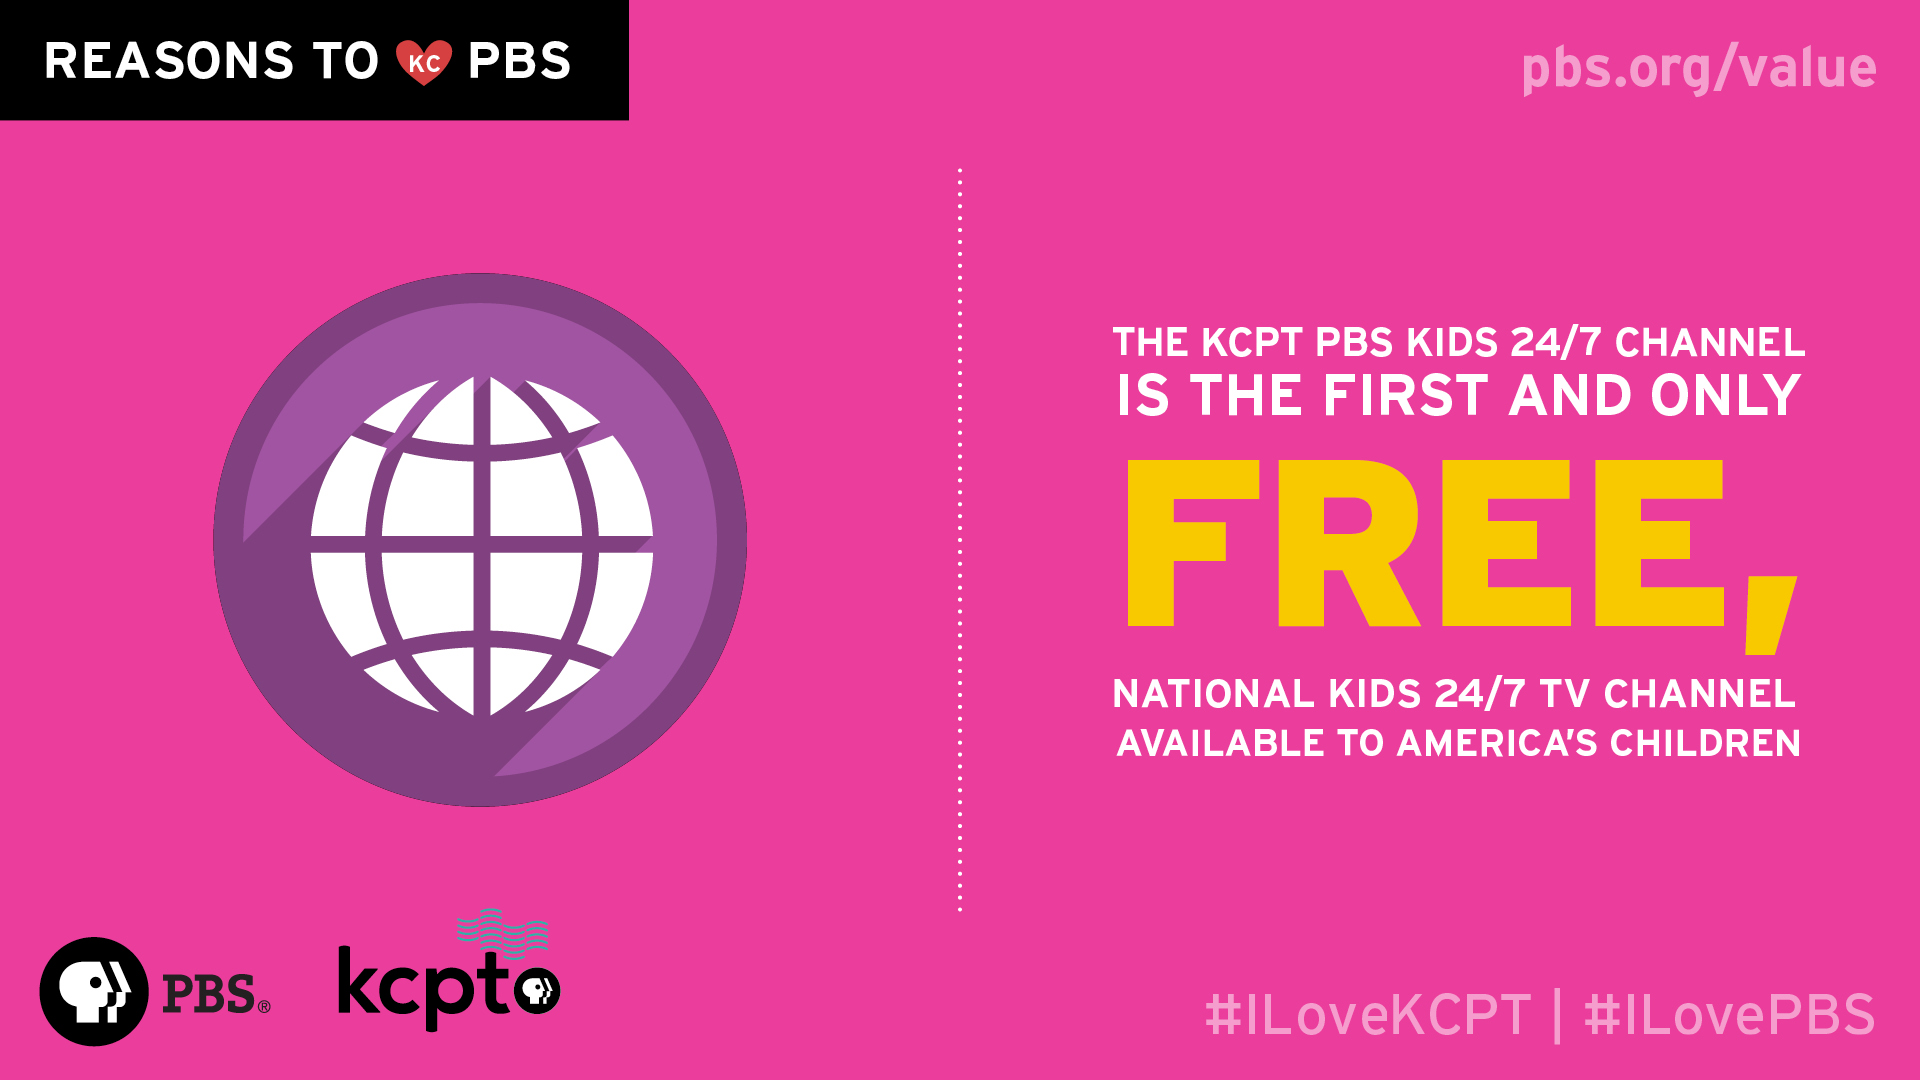 The KCPT PBS KIDS 24/7 Channel is the first and only FREE, national kids 24/7 channel available to America's children.